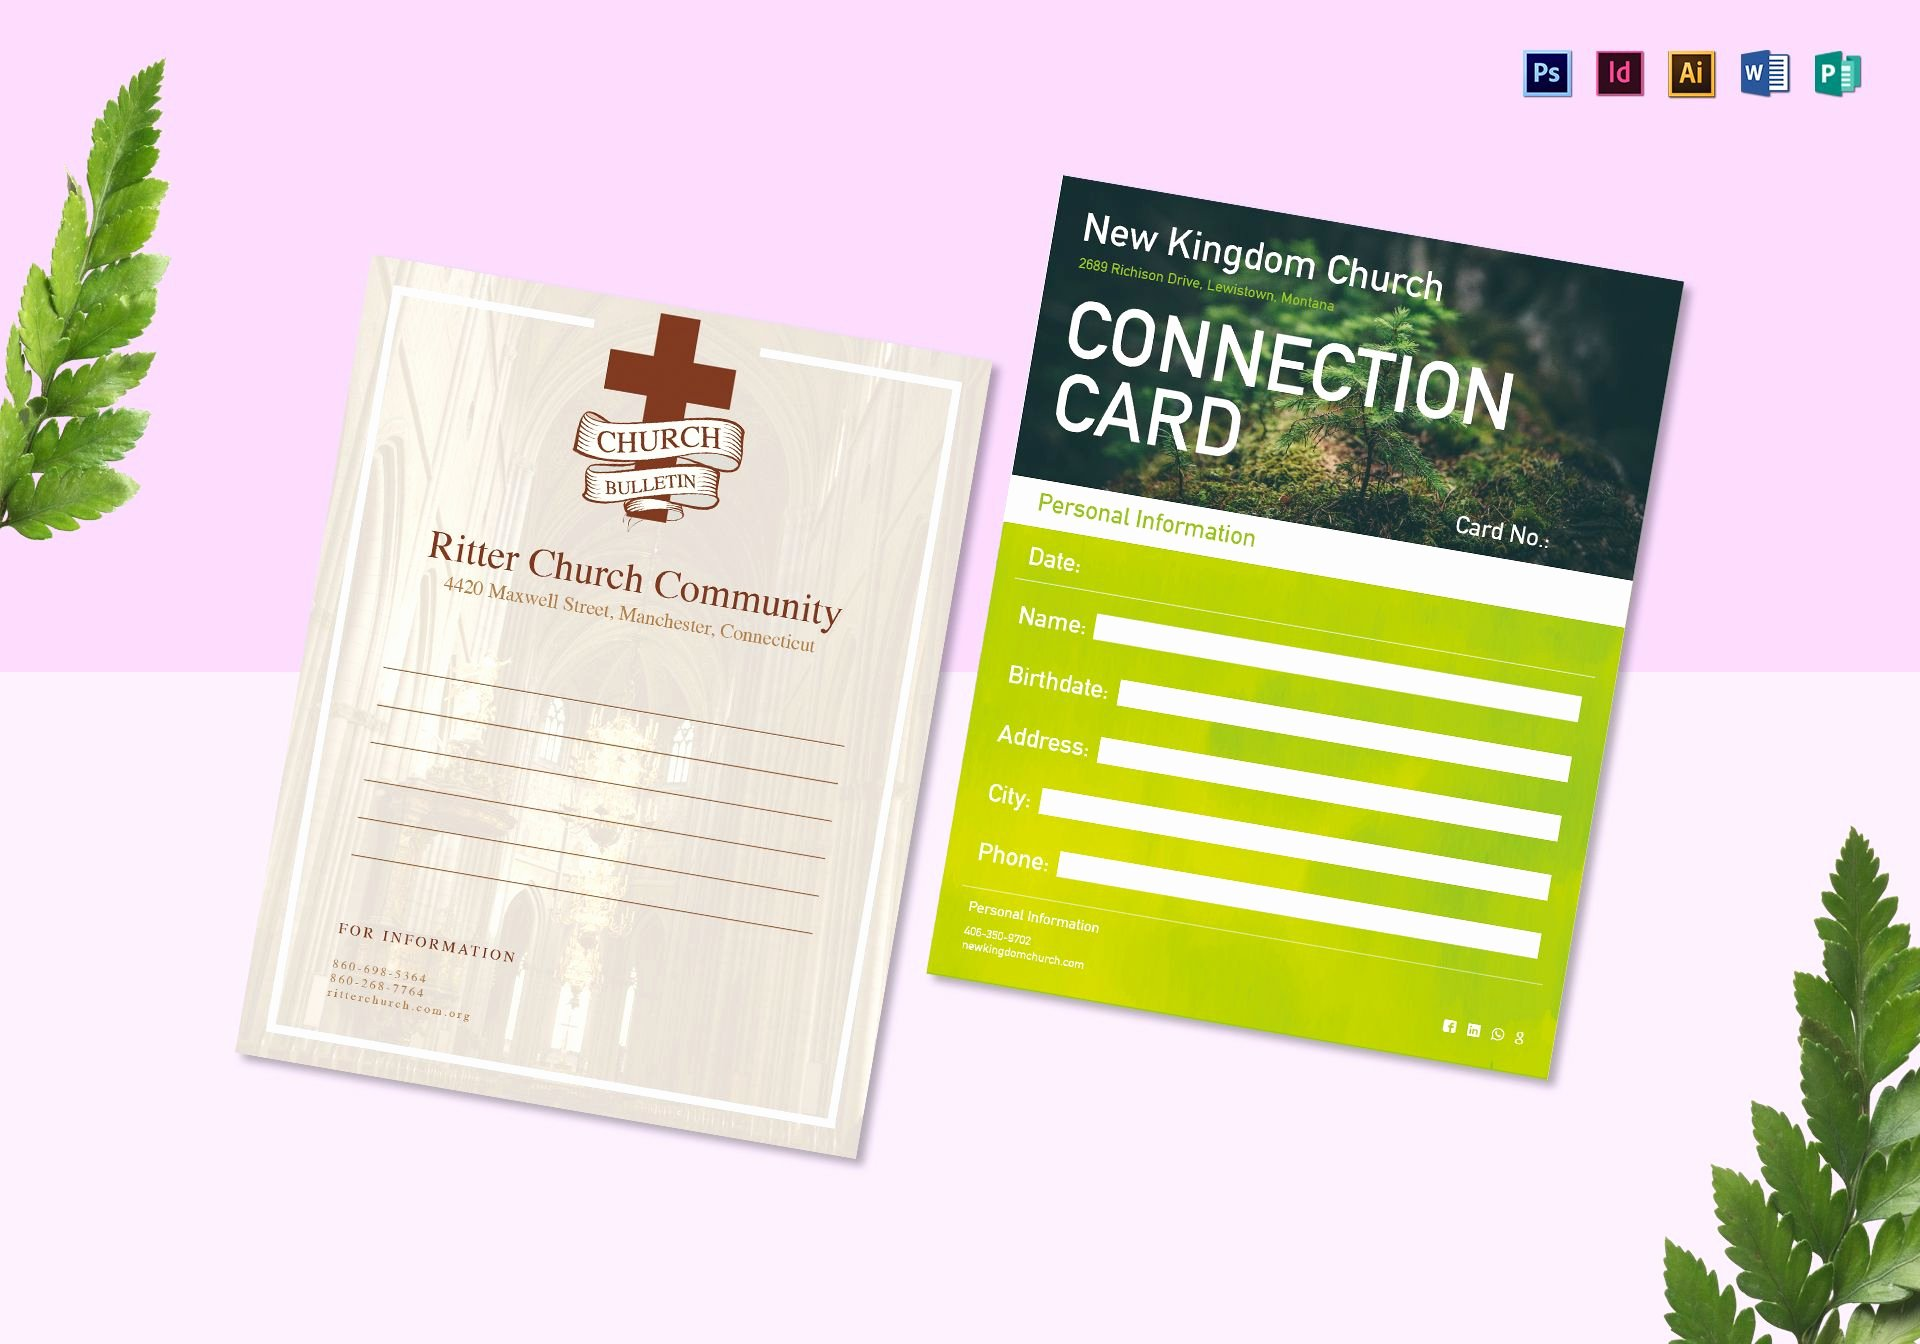 Church Bulletin Templates Word Beautiful Church Bulletin and Connect Card Flyer Design Template In